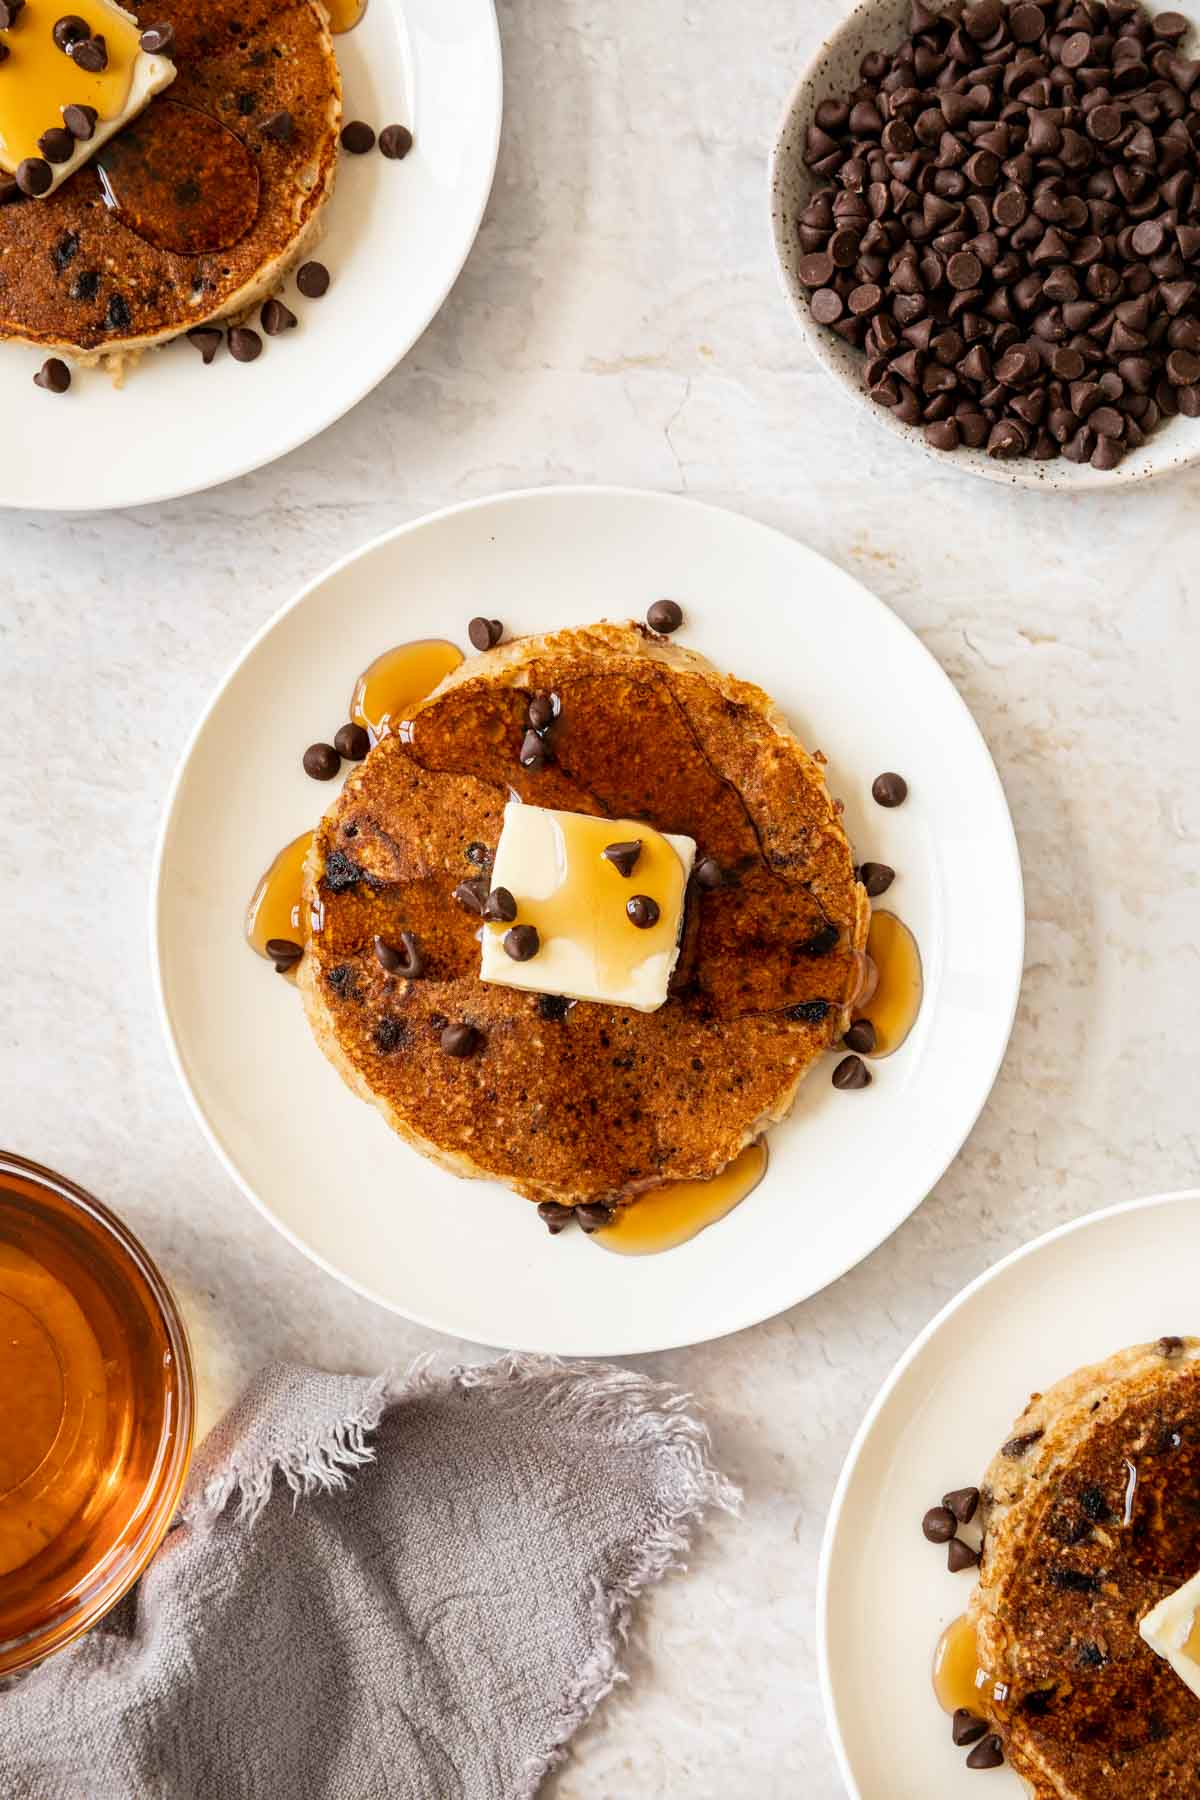 Chocolate Chip Pancakes on plates with bowl of chocolate chips